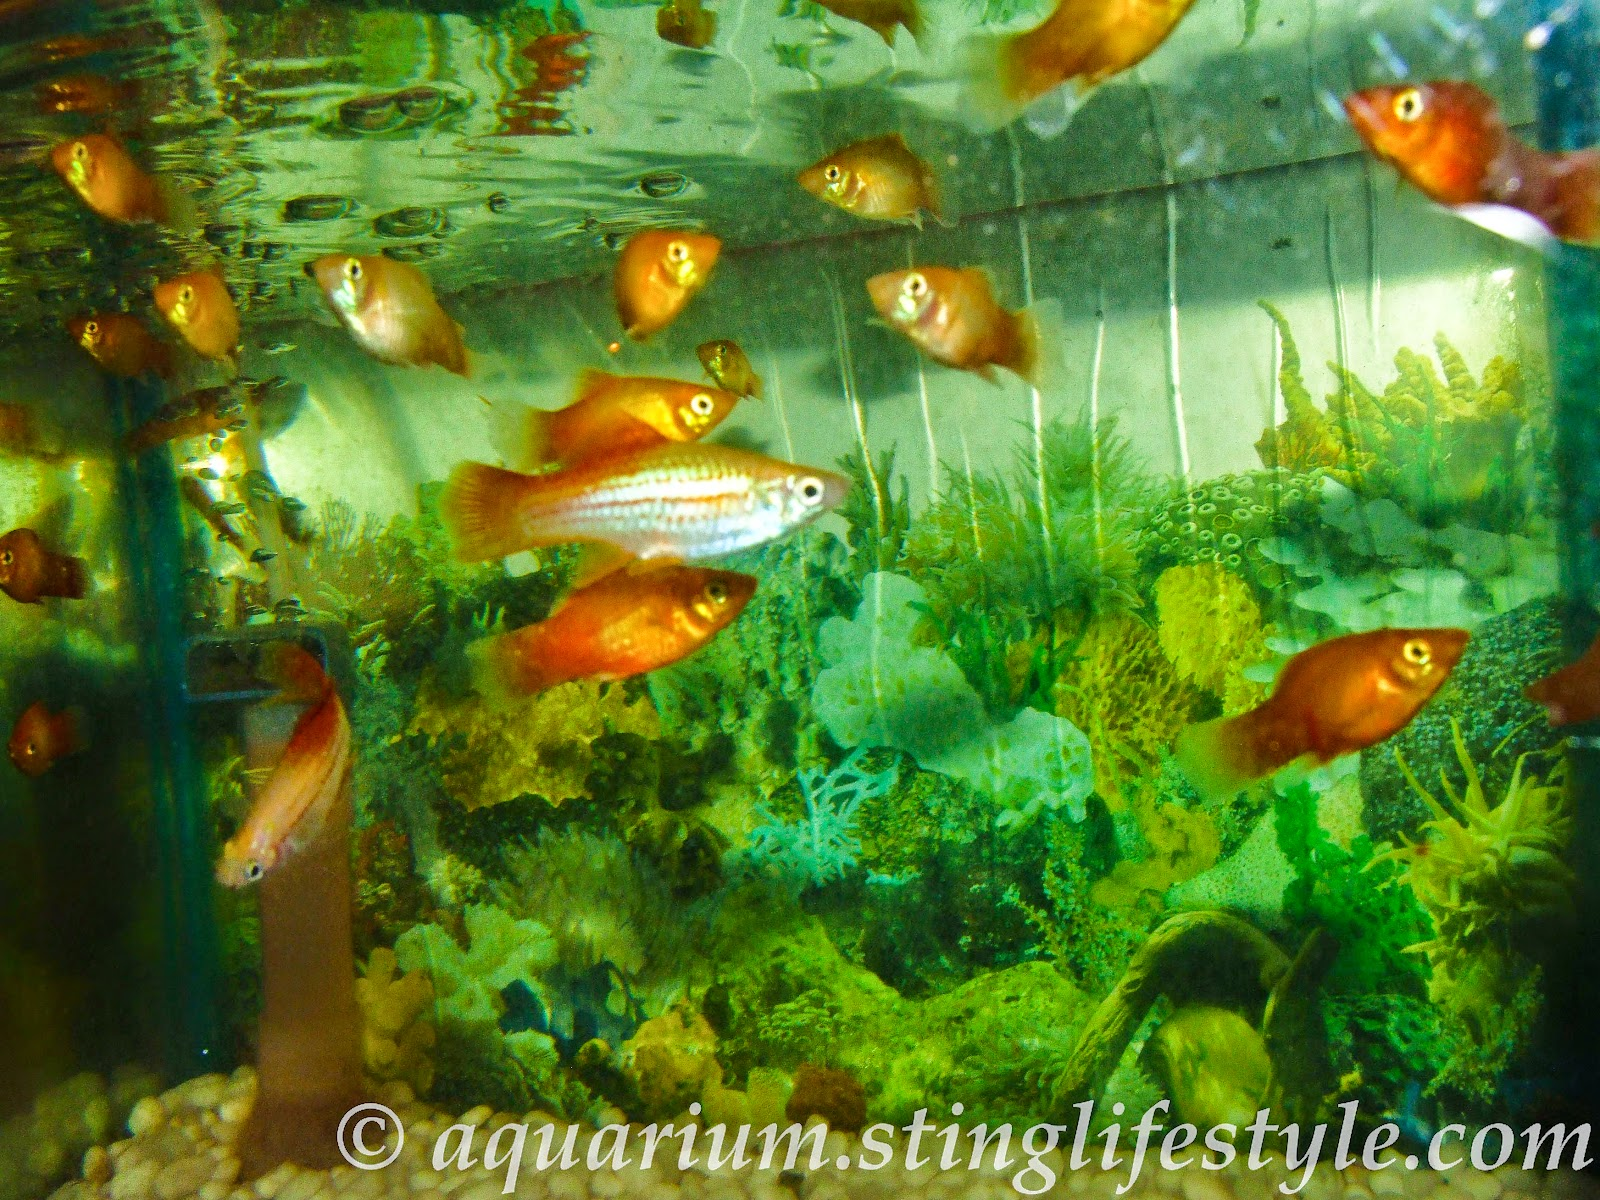 Platy fish pictures aquarium info Livebearer aquarium fish